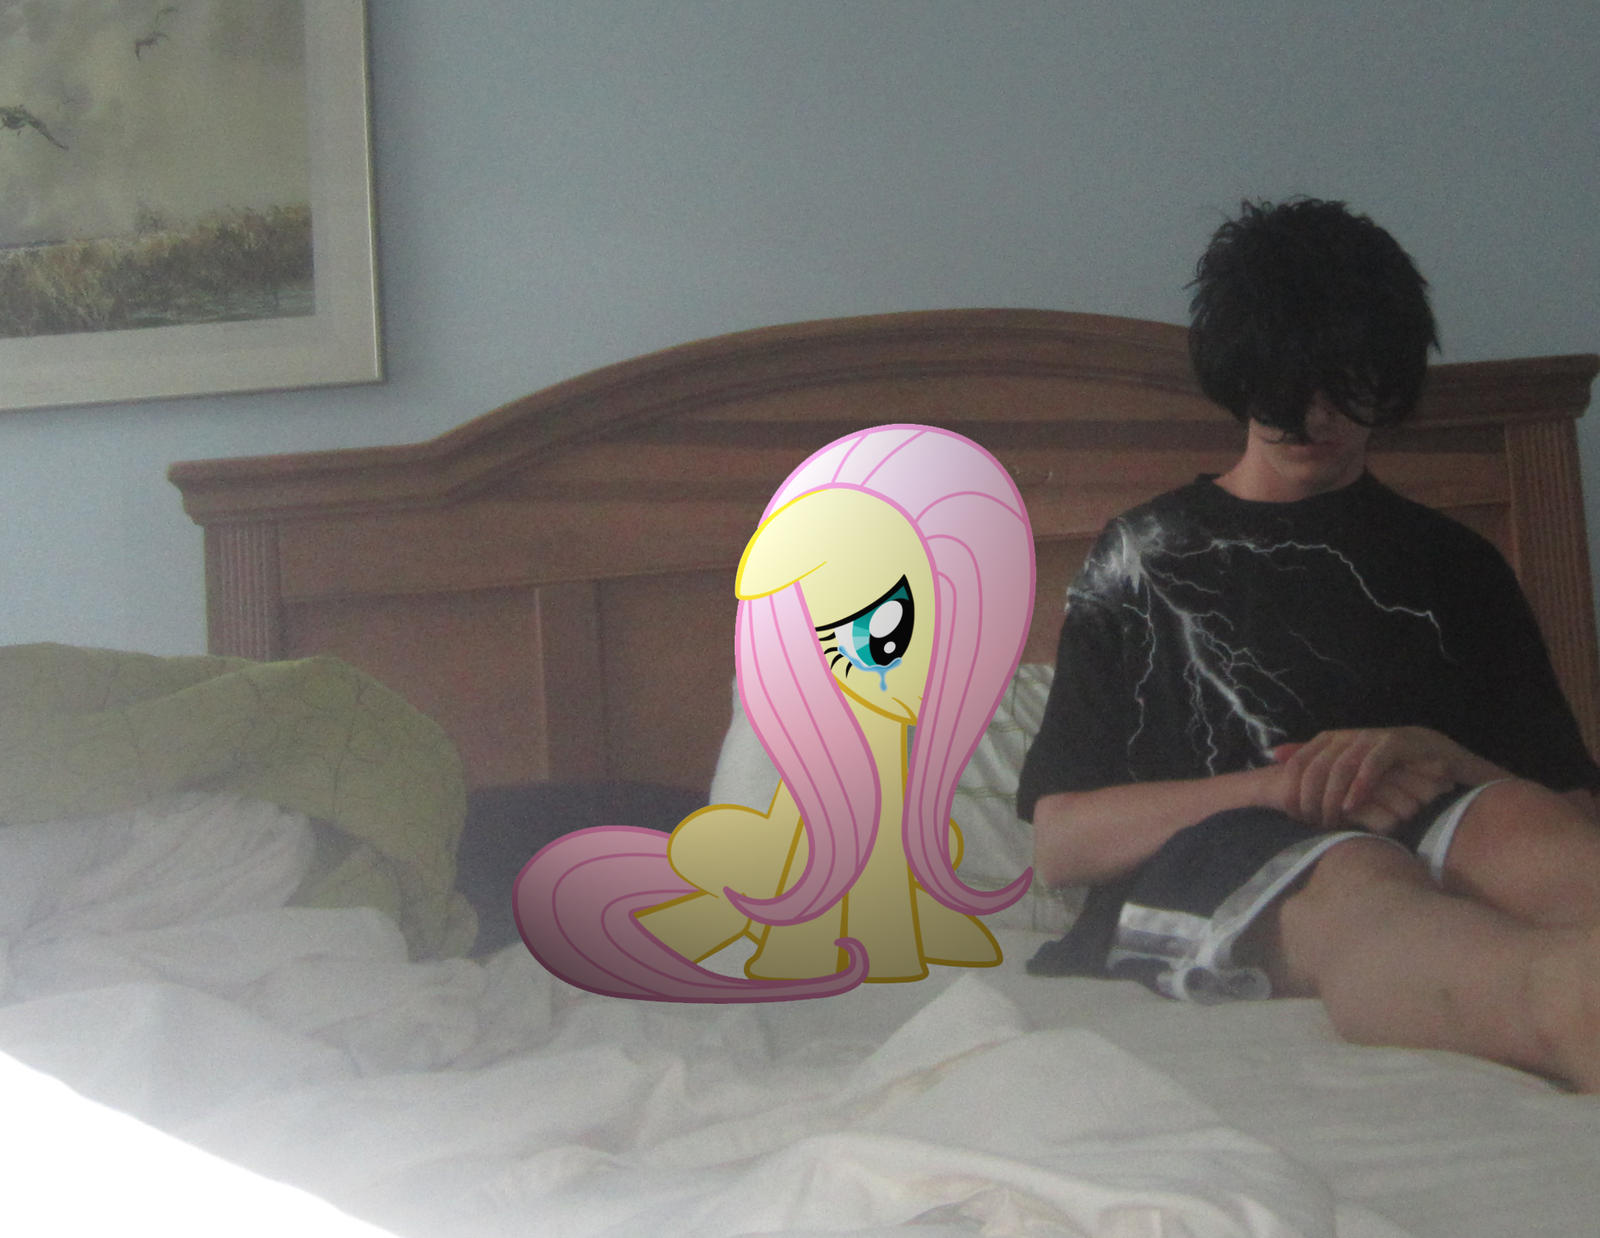 Me and Fluttershy sad by MetalGriffen69 Me and Fluttershy sad by  MetalGriffen69. Me and Fluttershy sad by MetalGriffen69 on DeviantArt